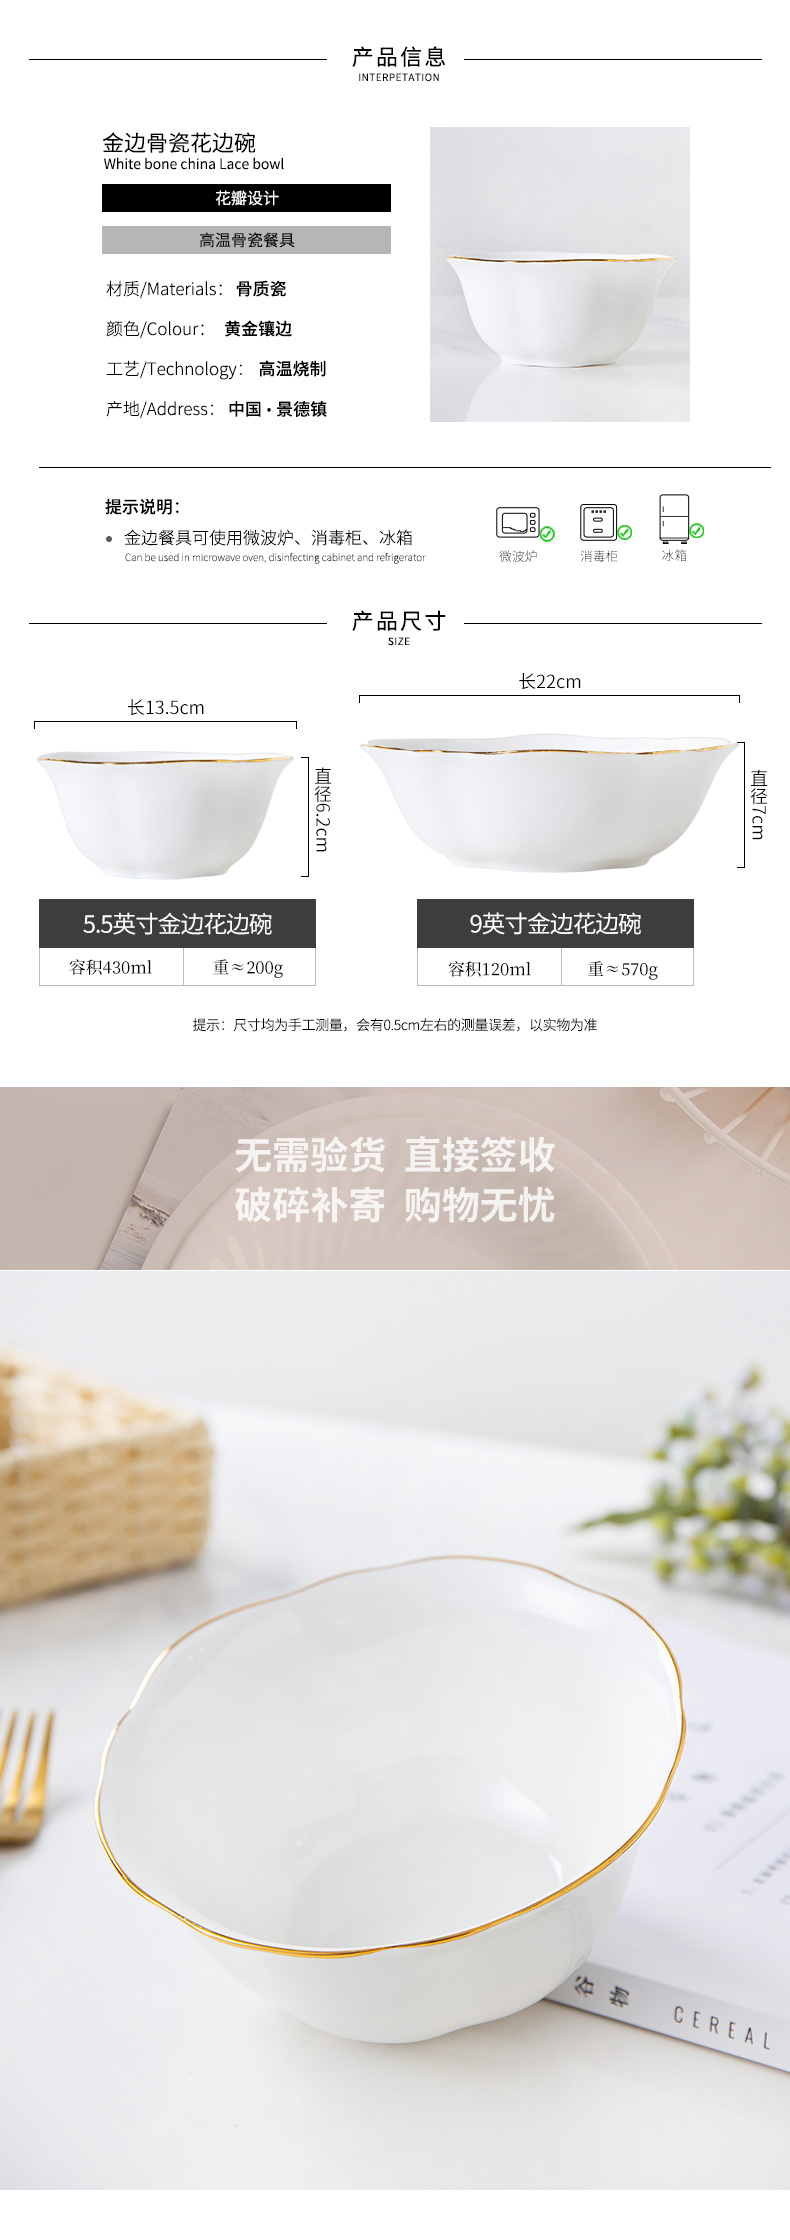 Light excessive ipads China up phnom penh dish with I and contracted creative lace bowl of soup bowl of jingdezhen ceramic tableware